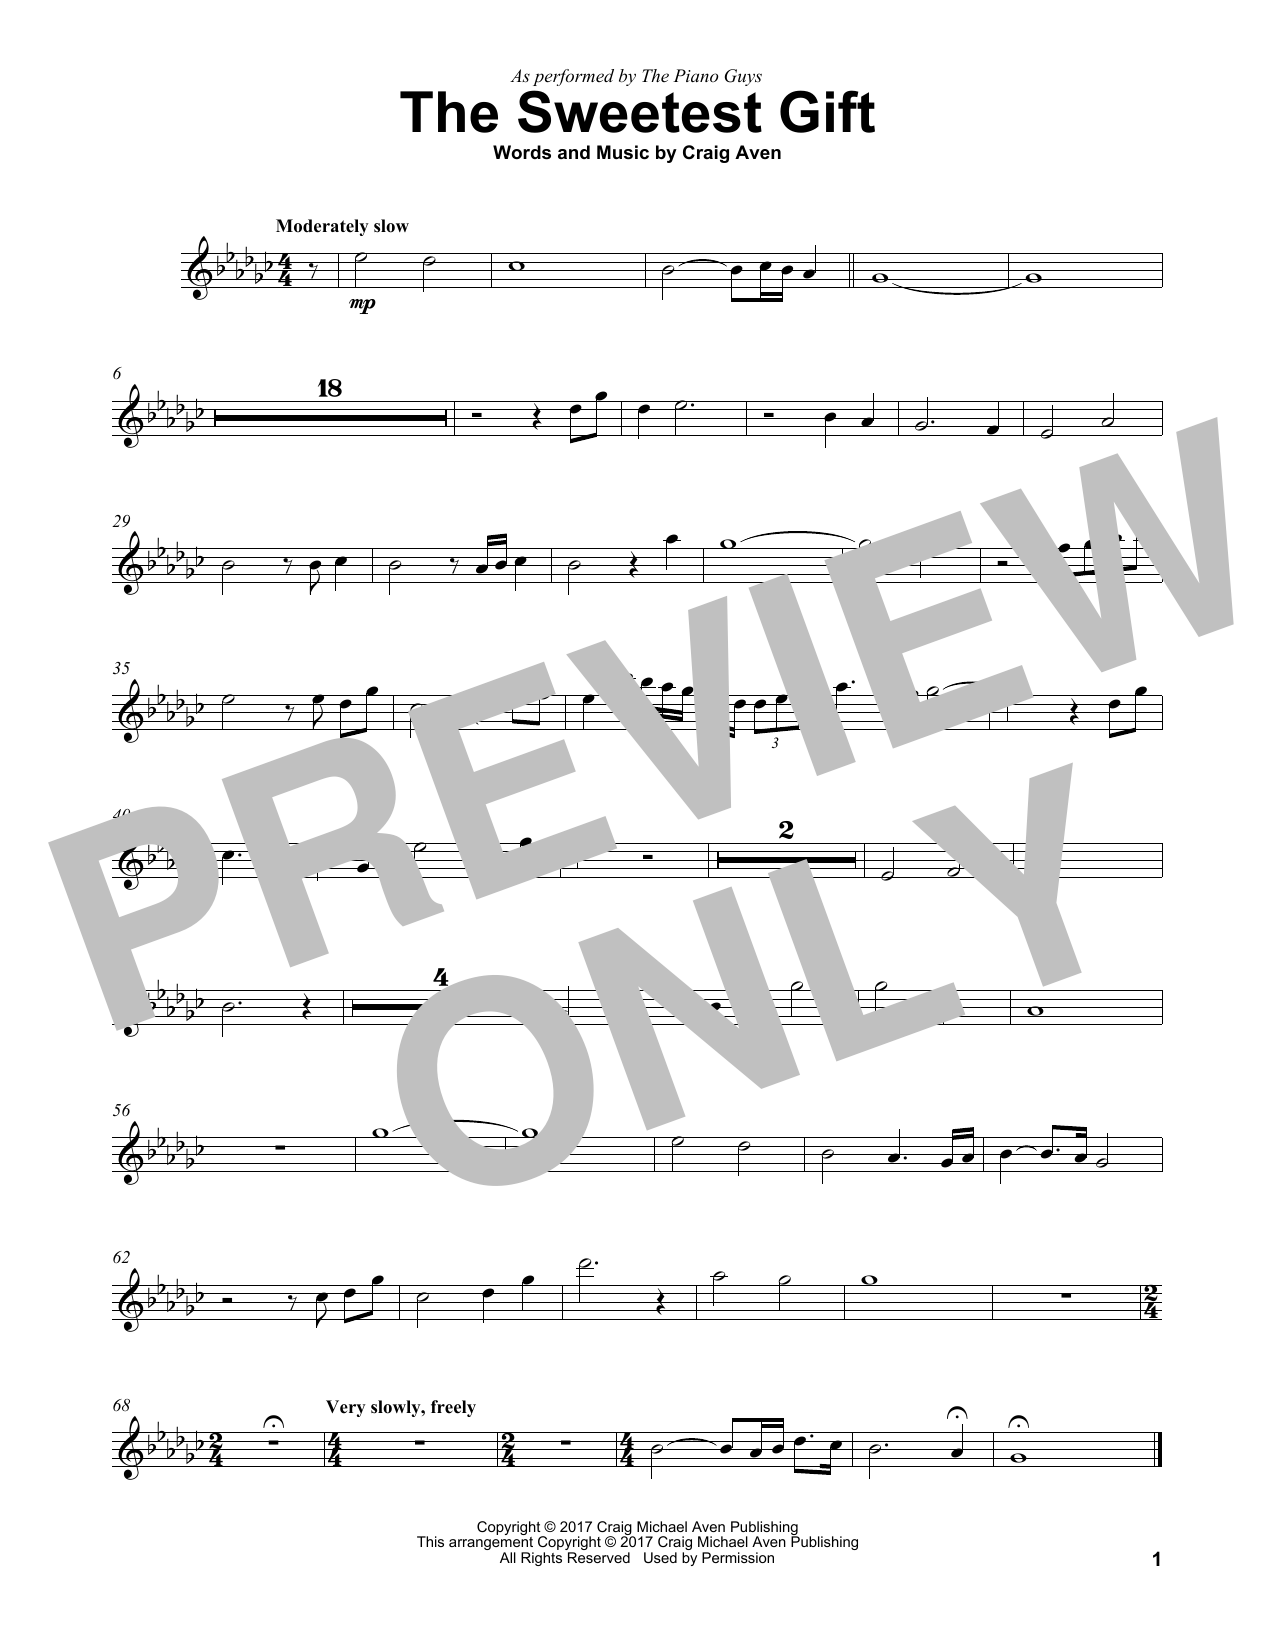 The Piano Guys The Sweetest Gift sheet music notes and chords